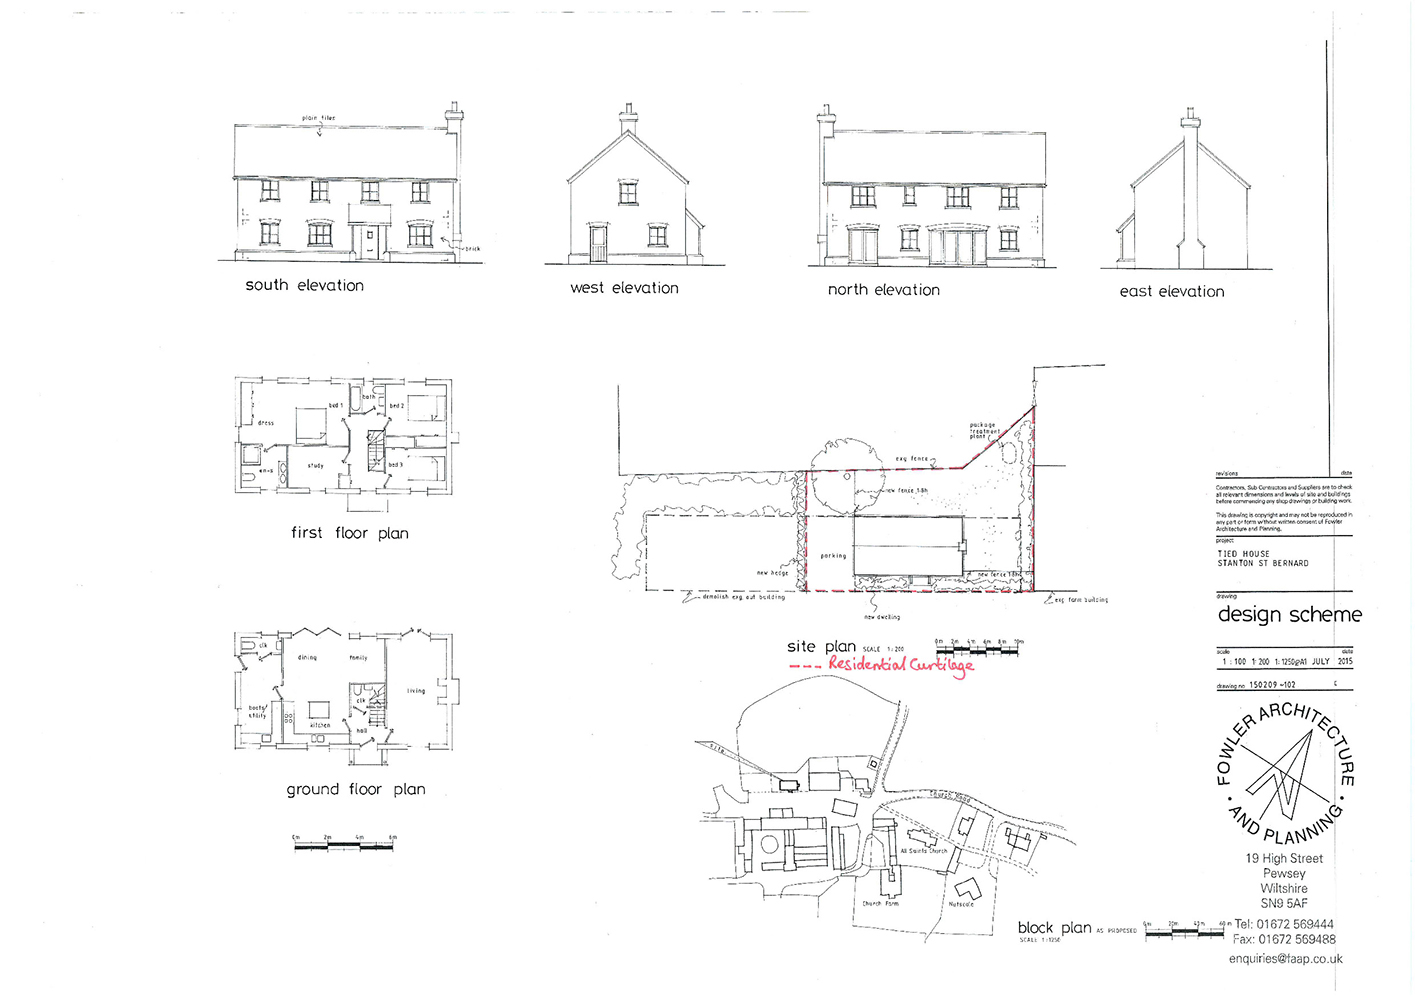 Tied-House-150209-102rev.C_Proposed-Plans-and-Elevations-1.jpg